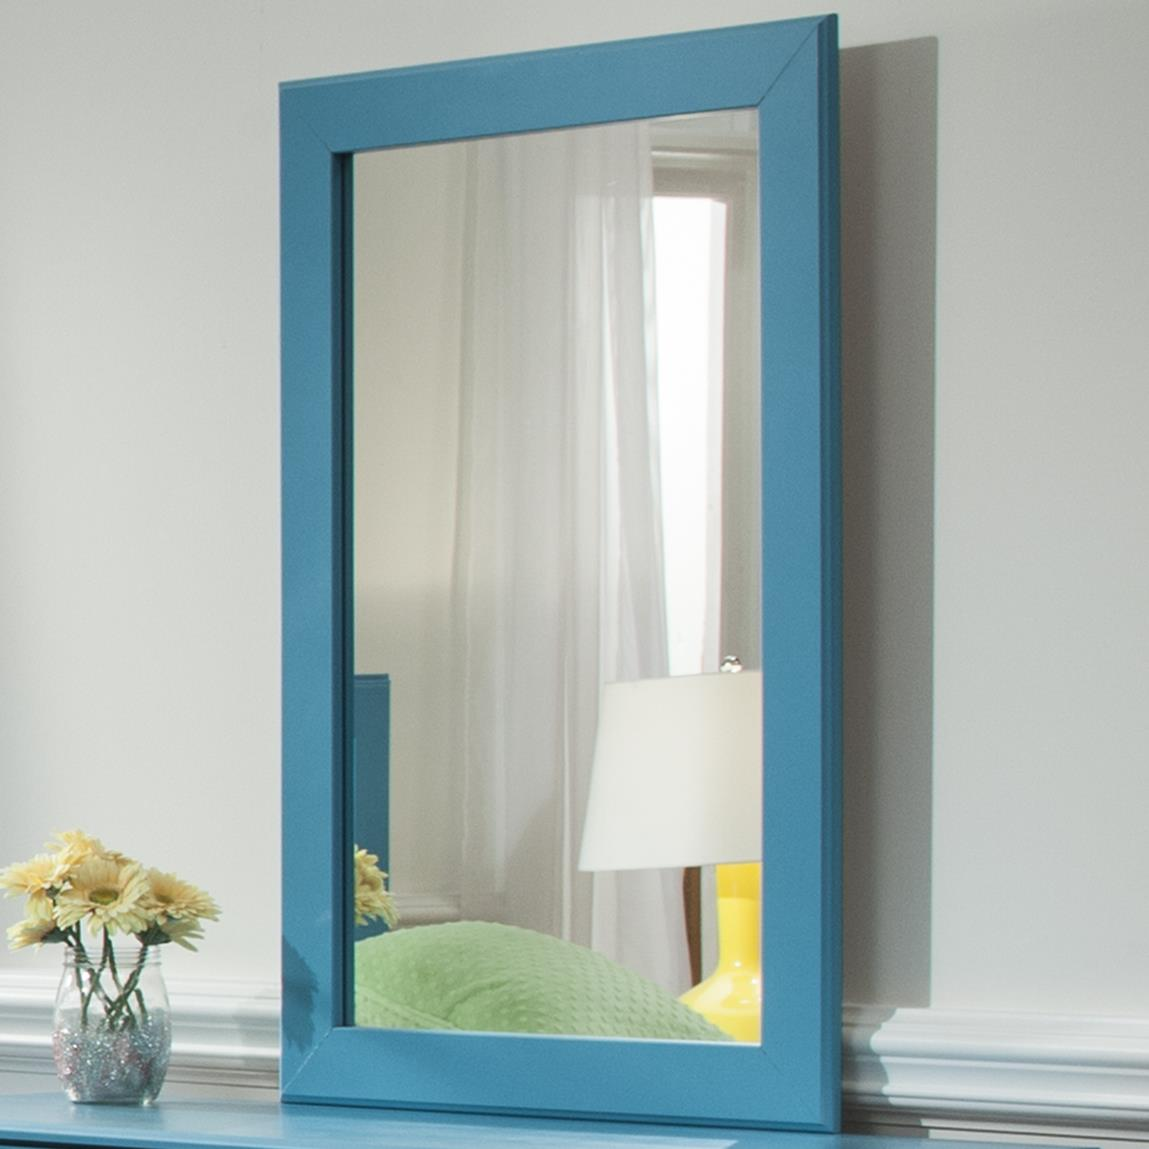 Kith Furniture 173 Turquoise Mirror - Item Number: 173-01